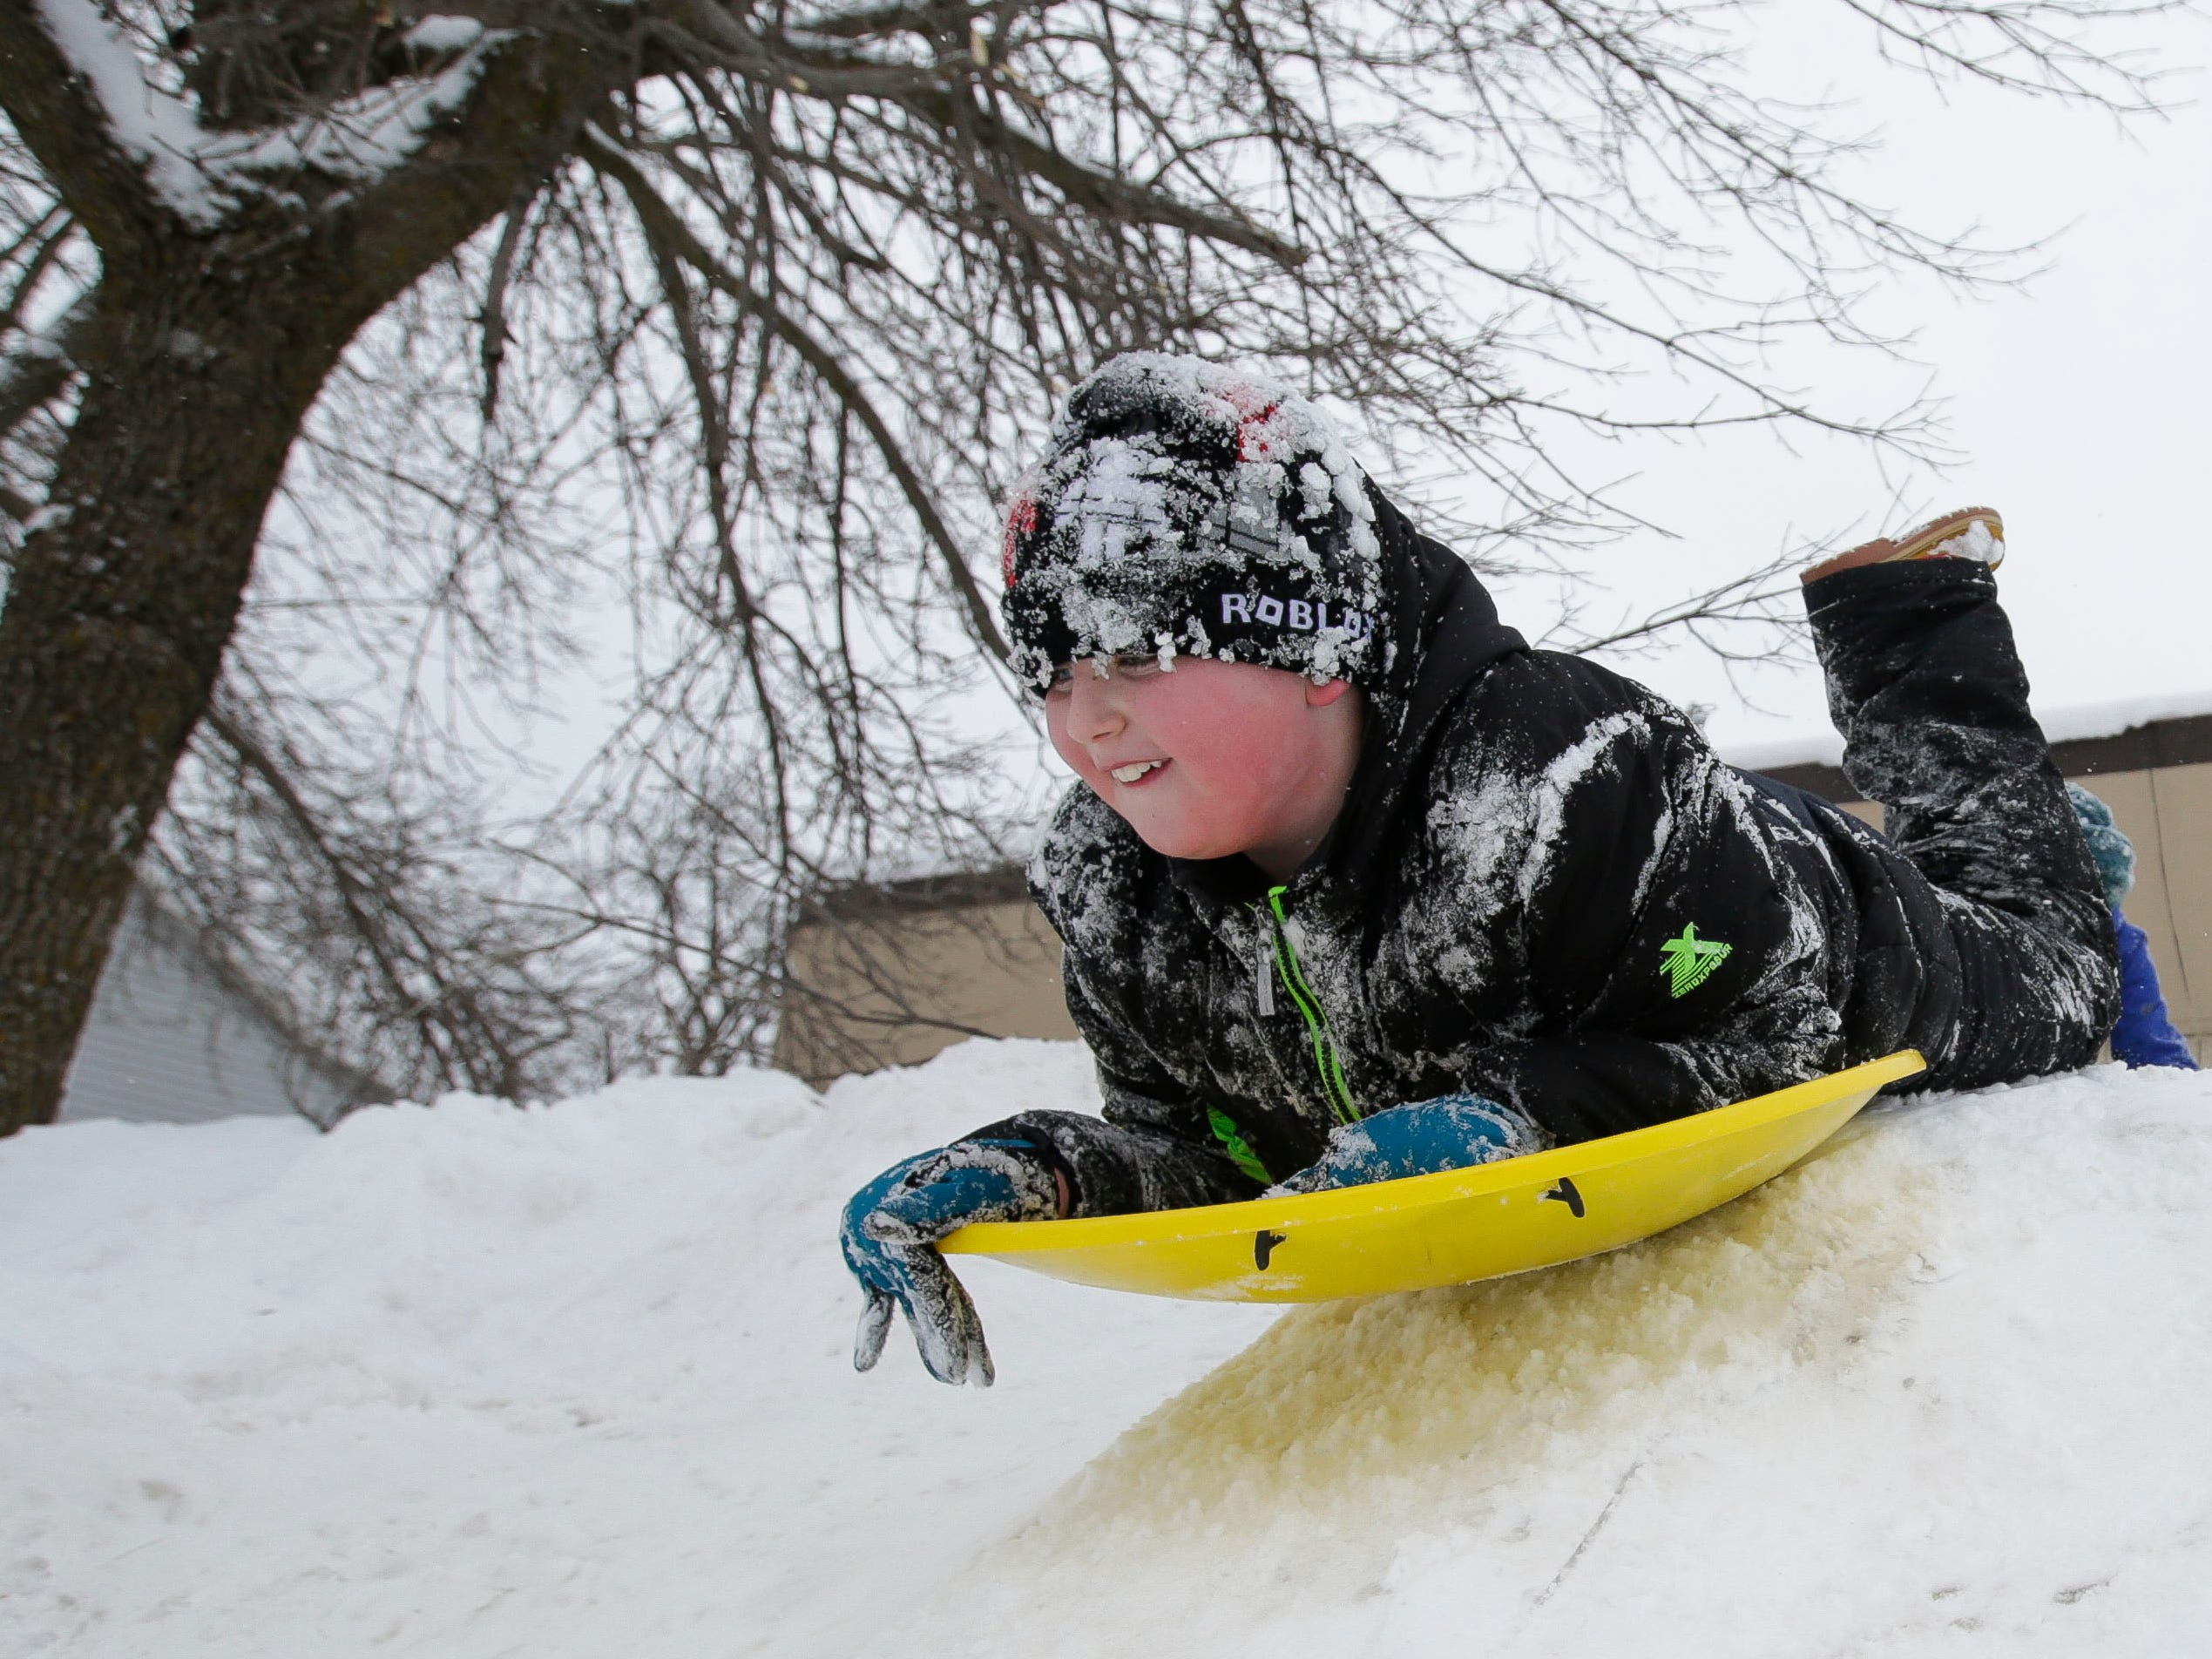 Holden Fritsche, 8, sleds on a pile of snow on Tuesday, February 12, 2019, in Stevens Point, Wis. A winter storm is expected to drop 8-11 inches of snow in central Wisconsin before clearing Tuesday night.